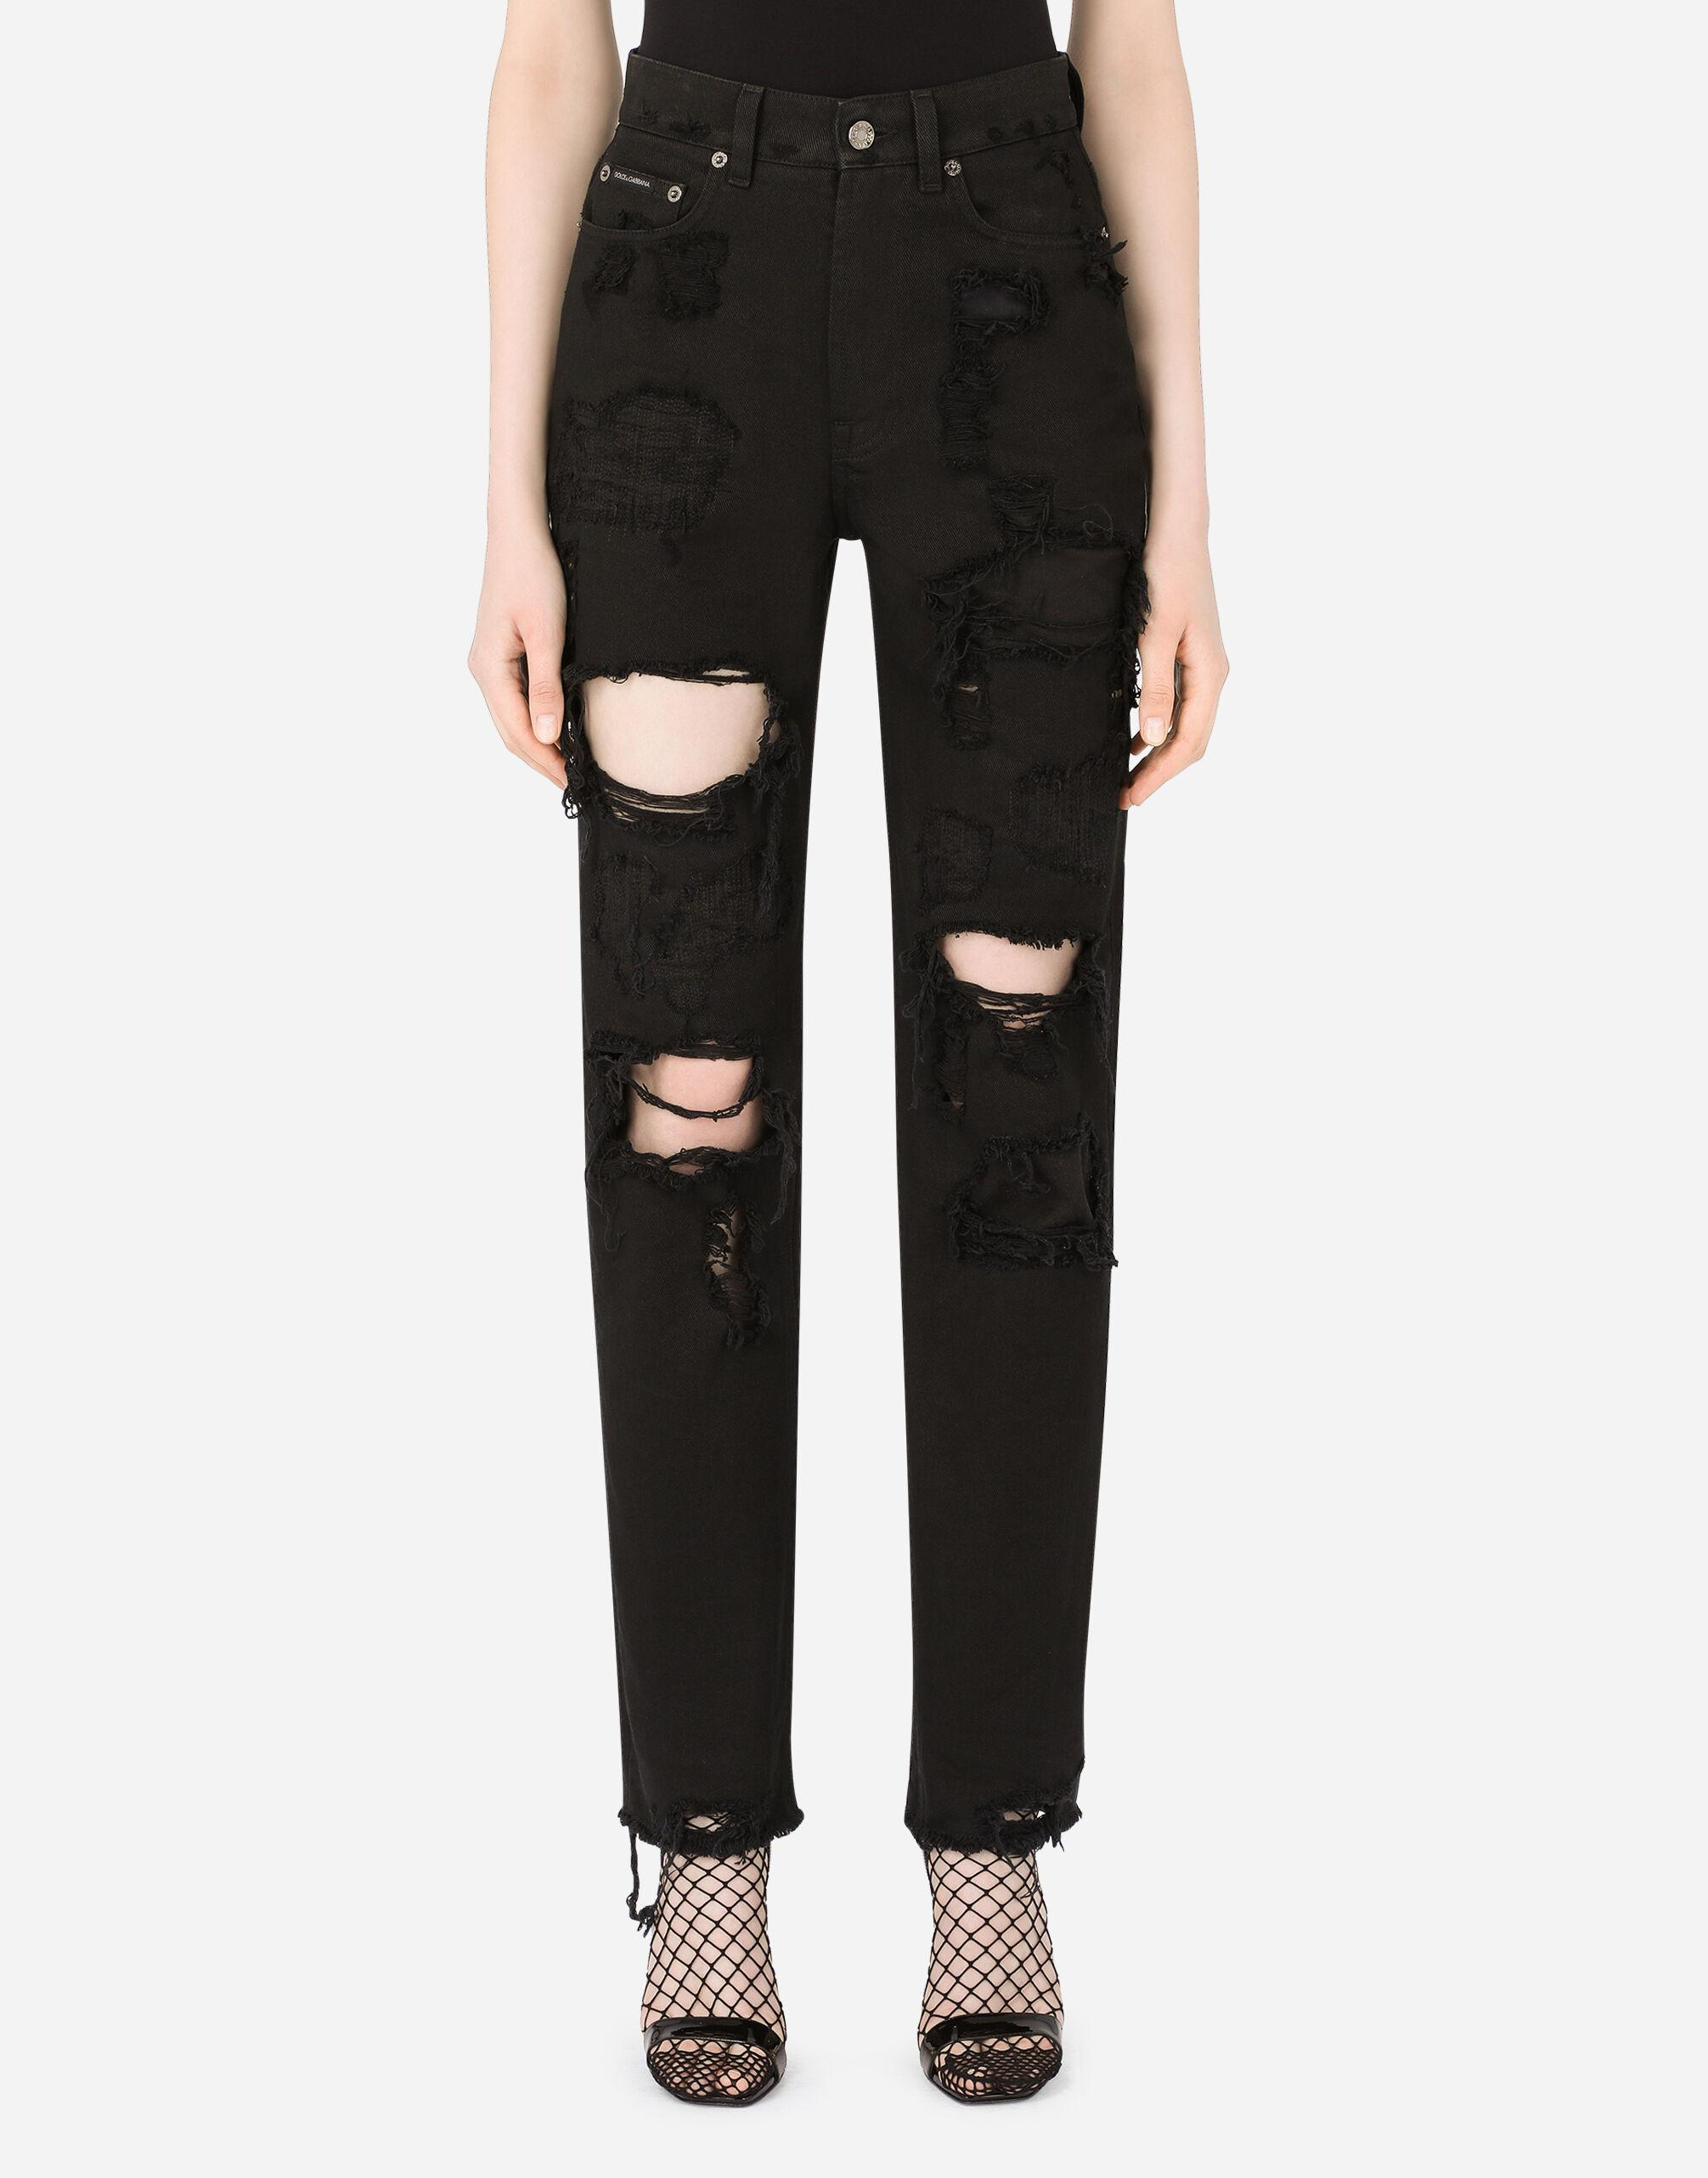 Boyfriend jeans with rips